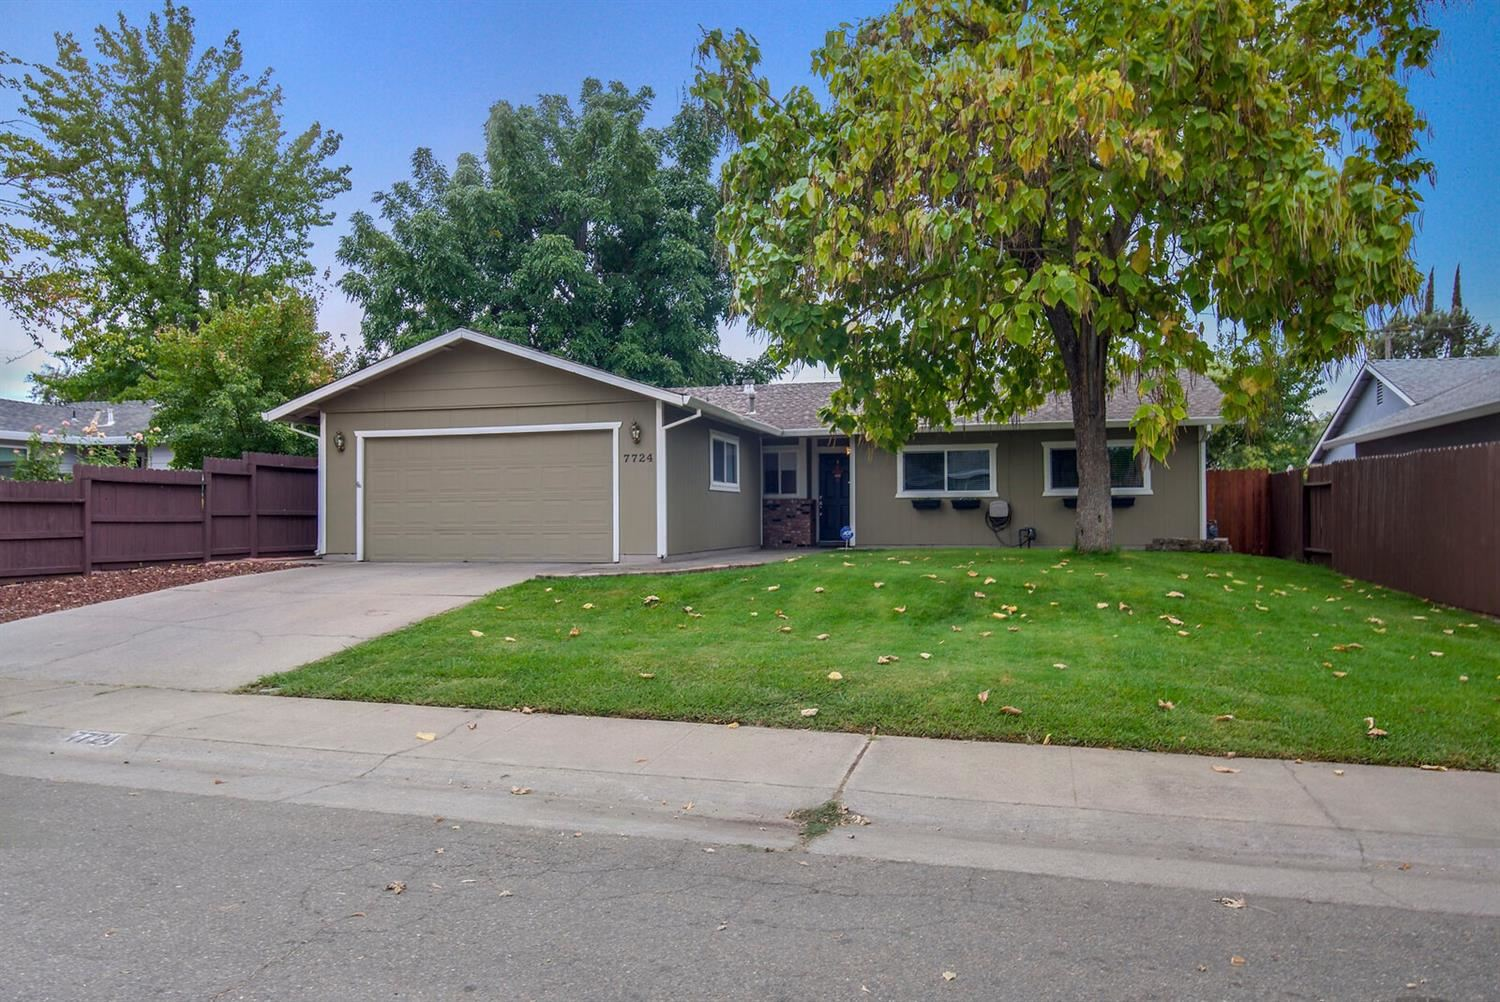 Photo of 7724 Spring Valley, Citrus Heights, CA 95610 (MLS # 20062391)